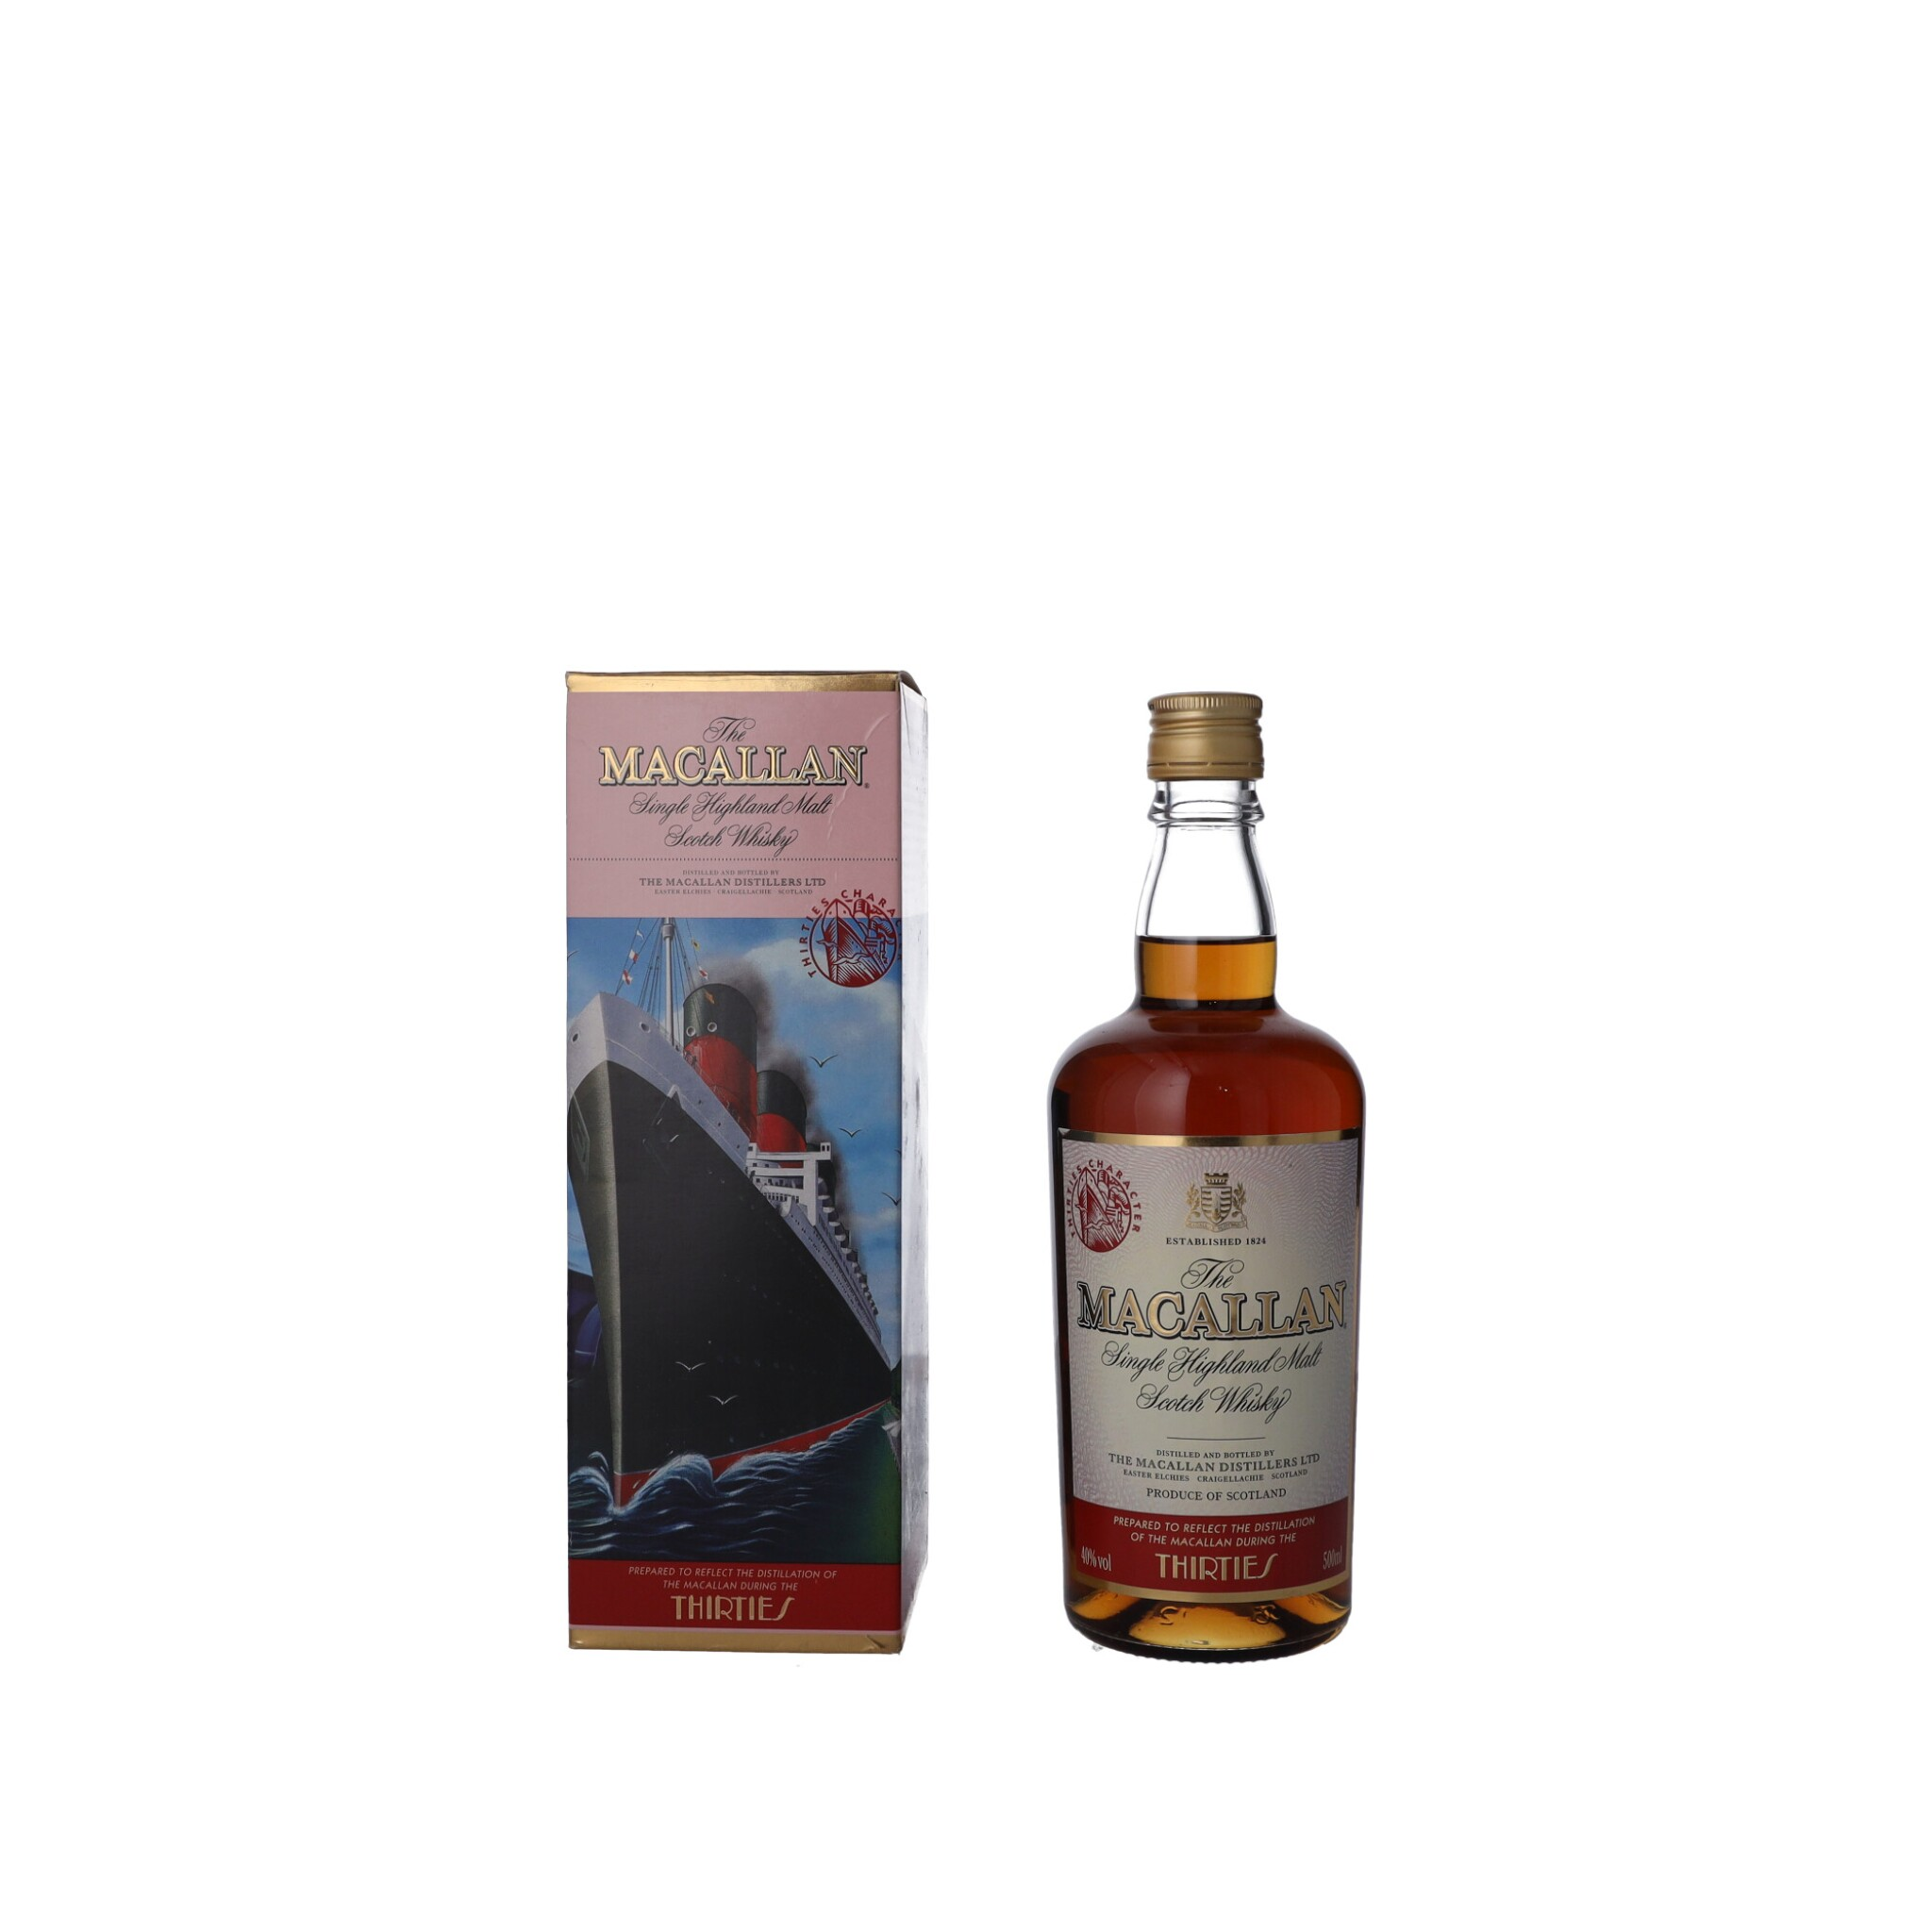 """View full screen - View 1 of Lot 56. The Macallan Travel Decades Series """"Thirties"""" 40.0 abv NV (1 BT50)."""